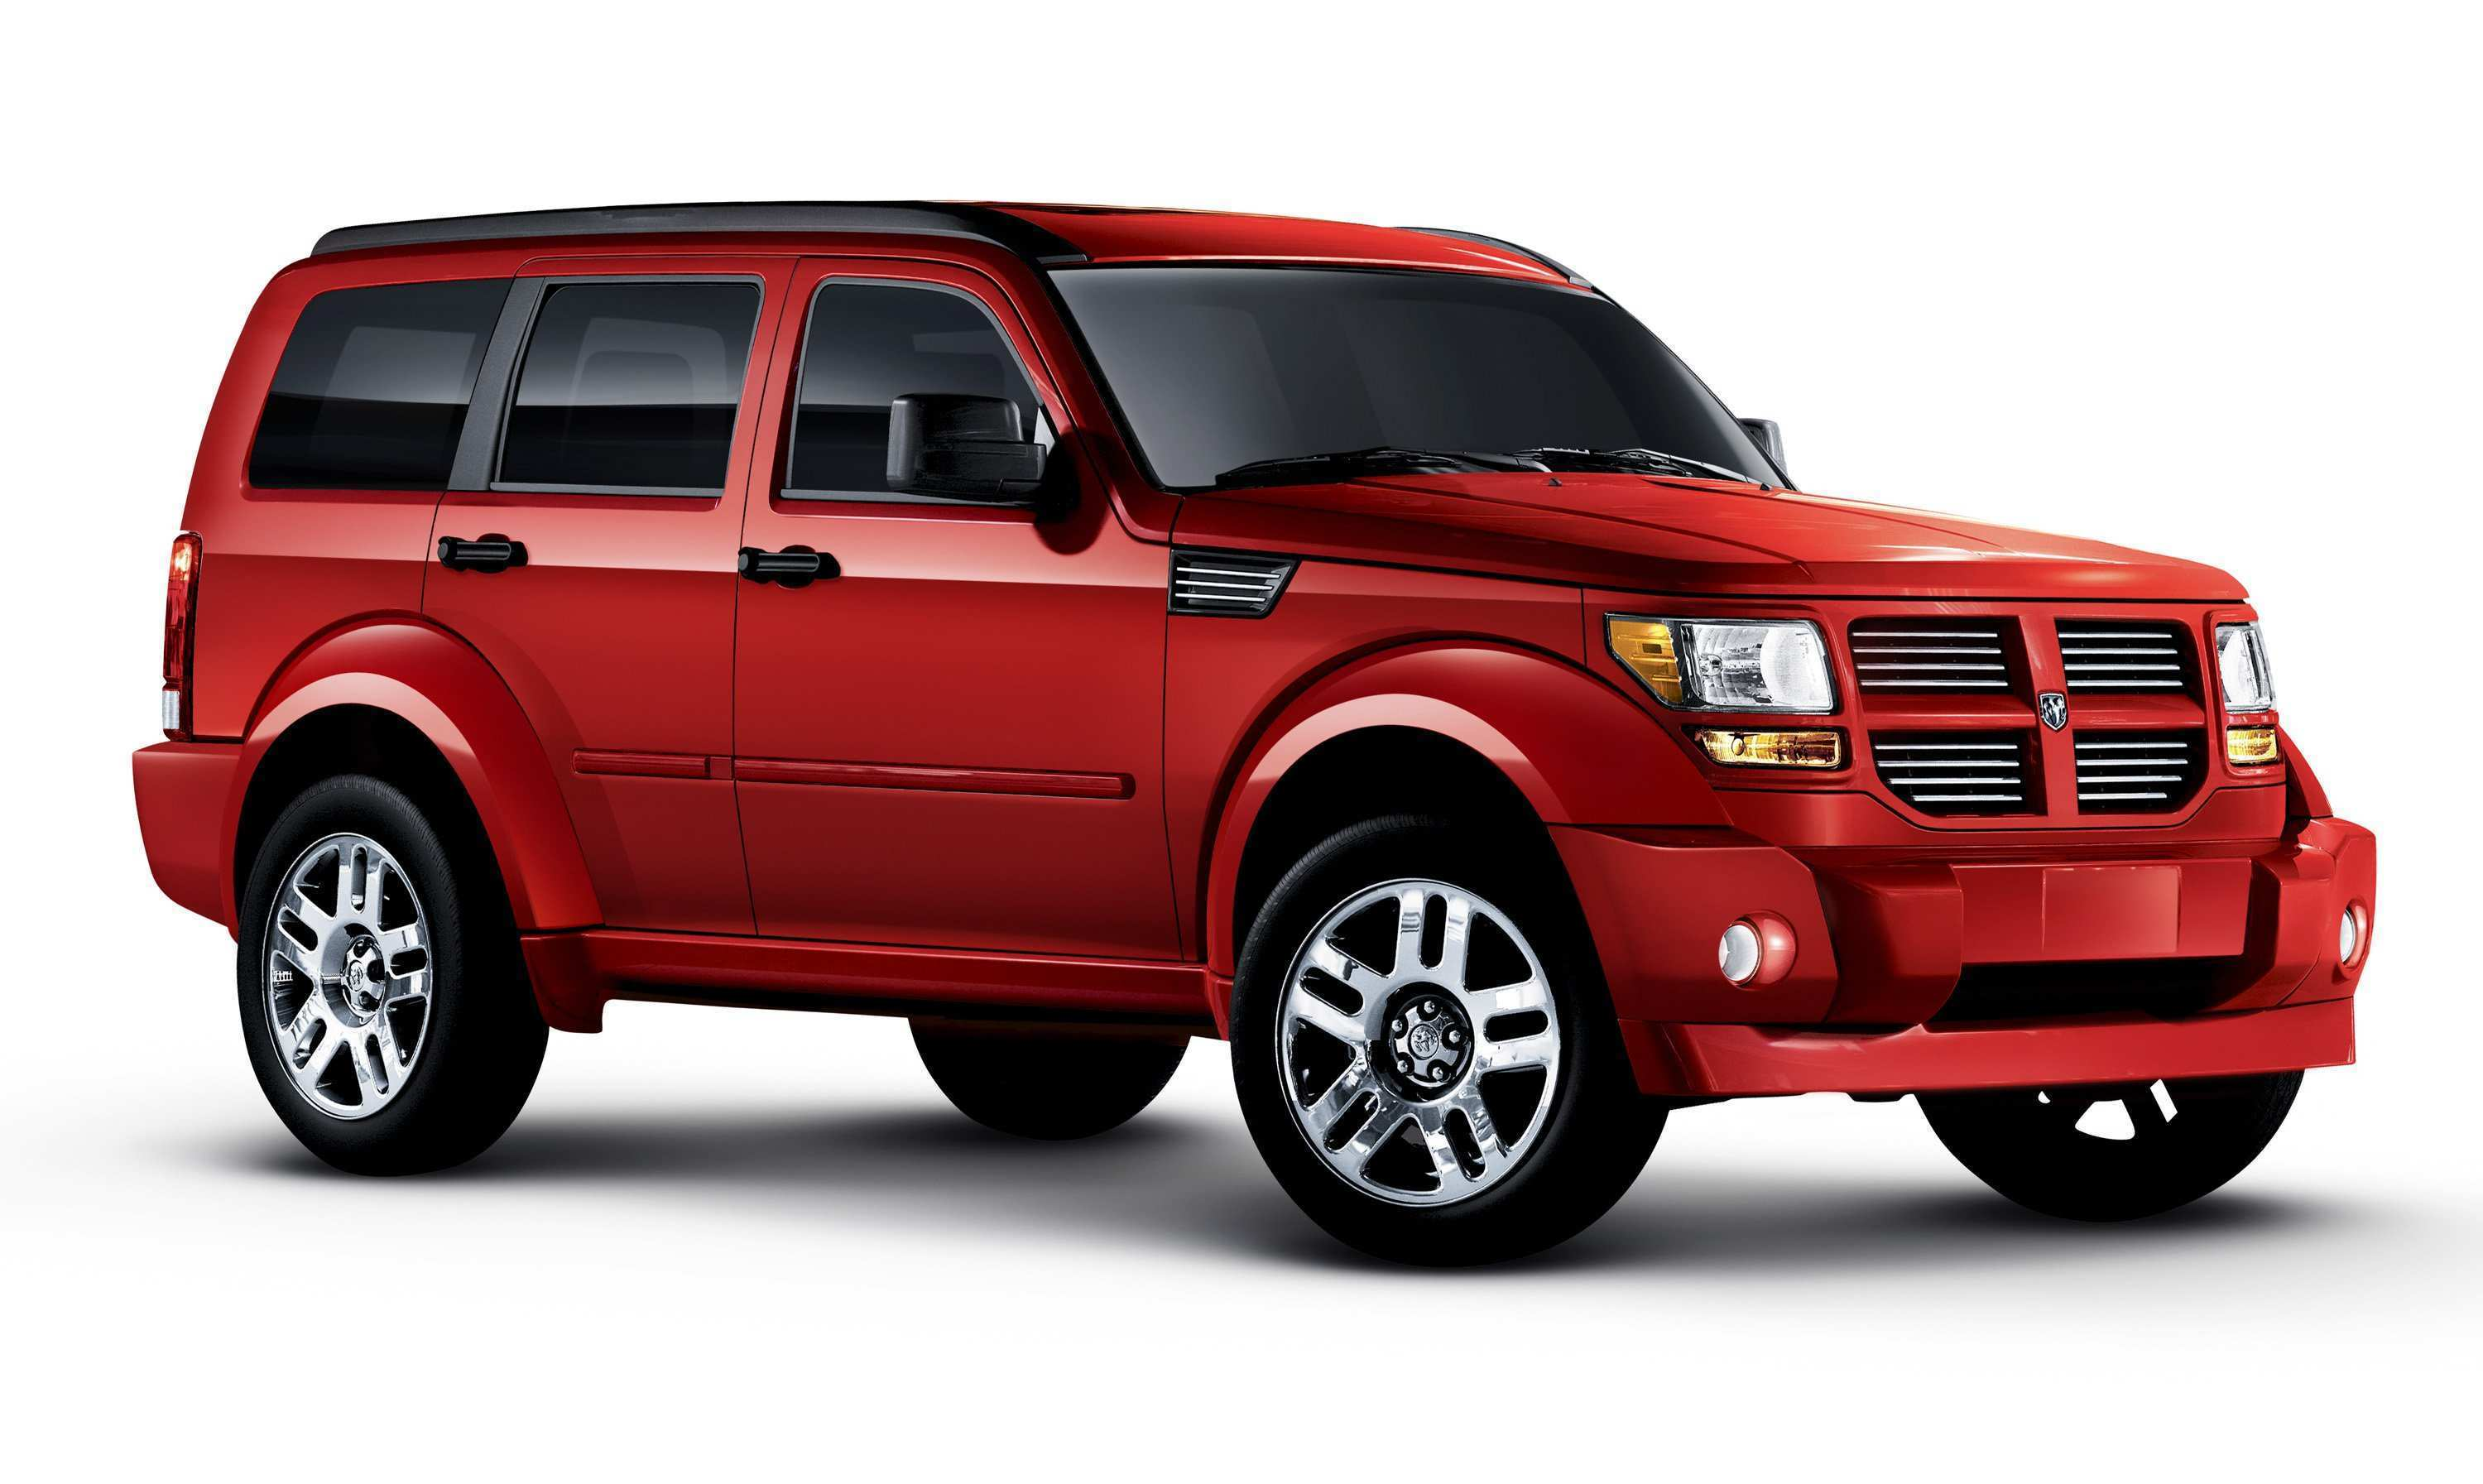 52 All New 2020 Dodge Nitro New Review